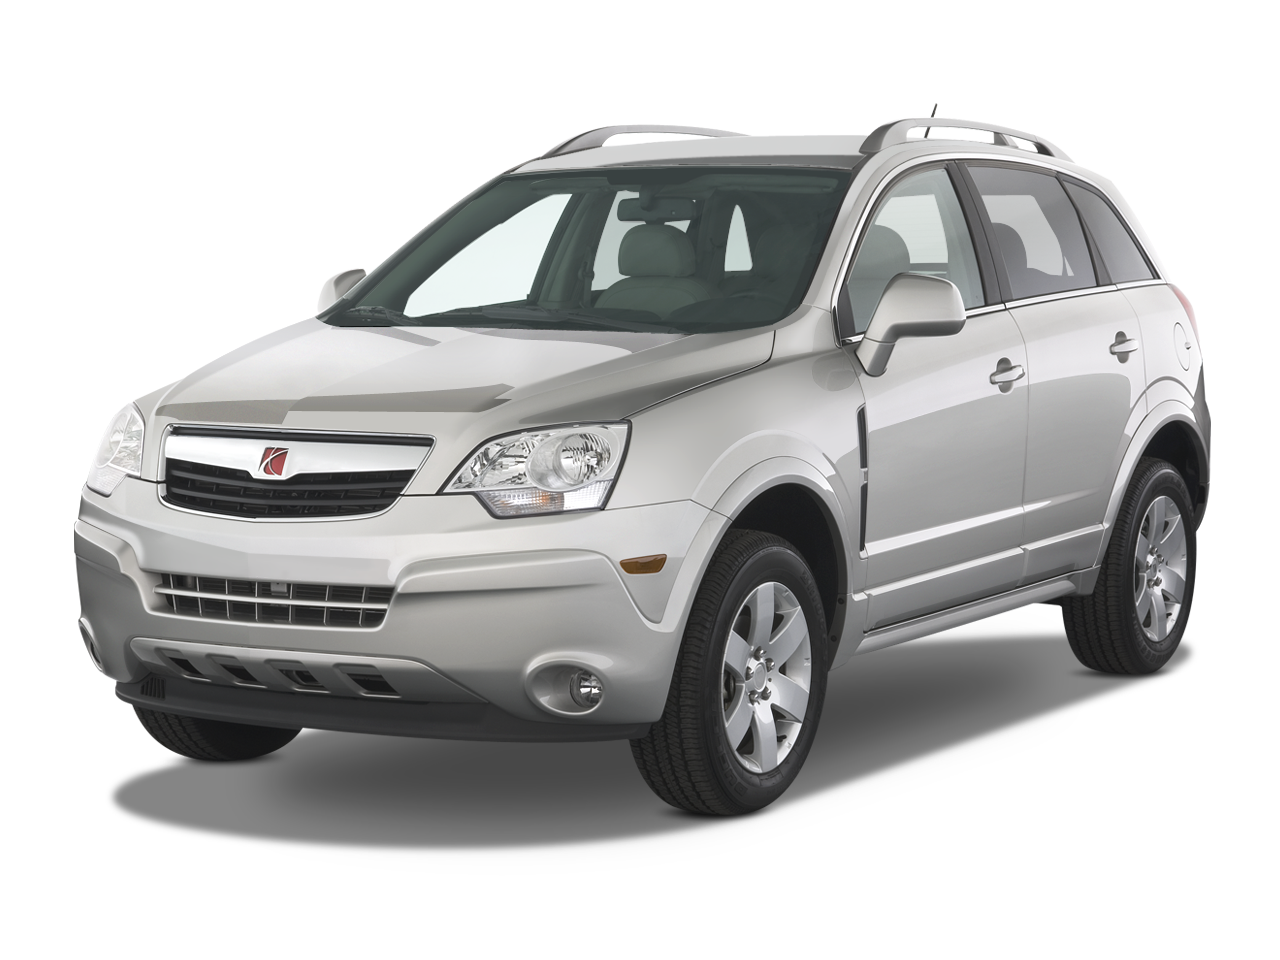 2008 Saturn Vue AWD